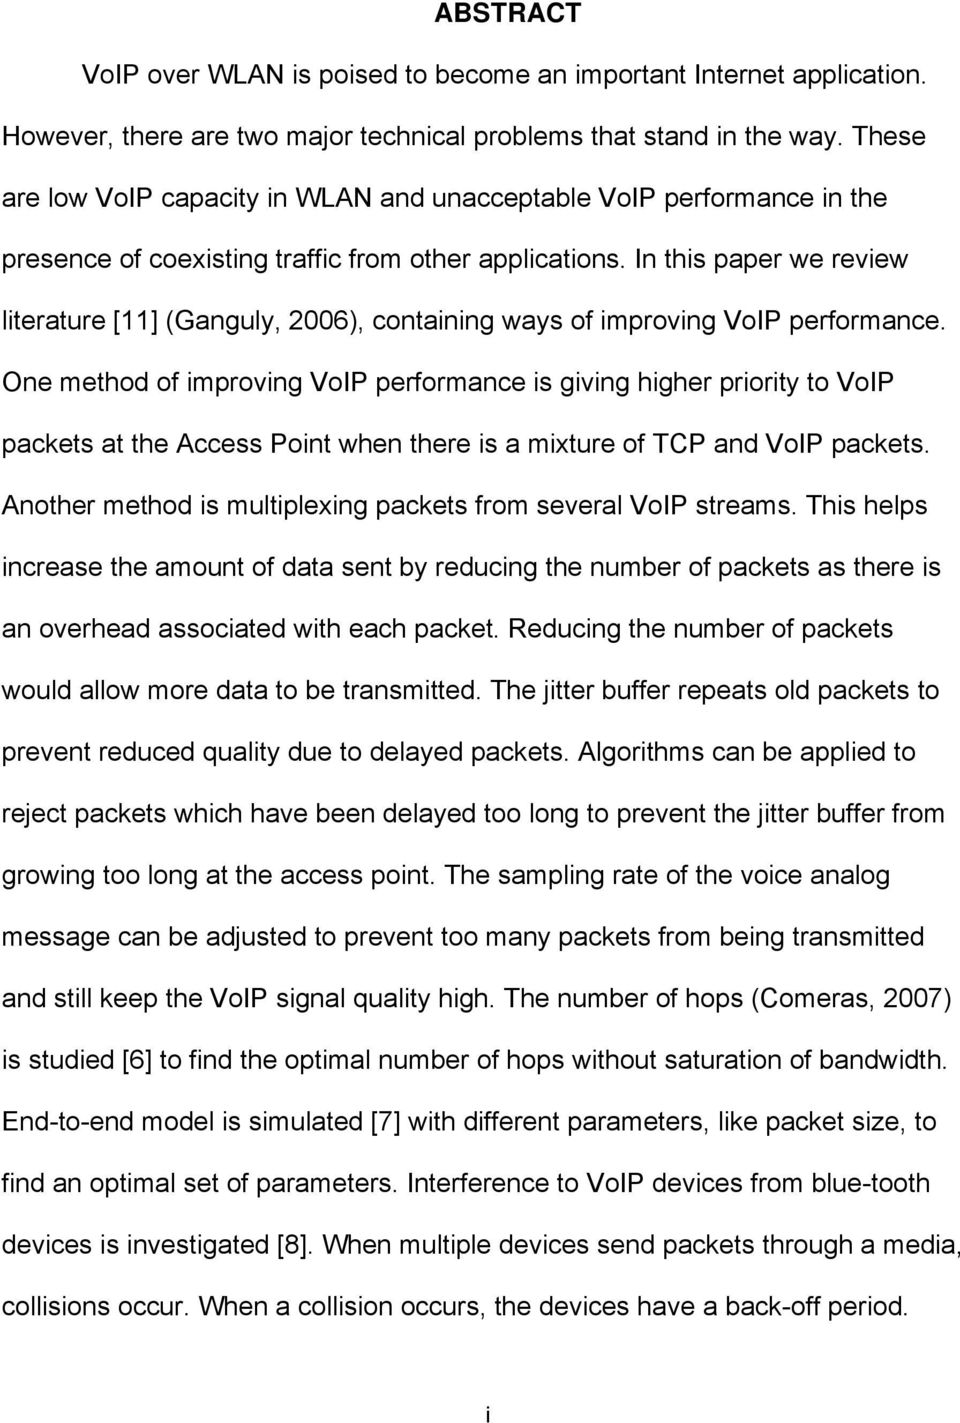 In this paper we review literature [11] (Ganguly, 2006), containing ways of improving VoIP performance.